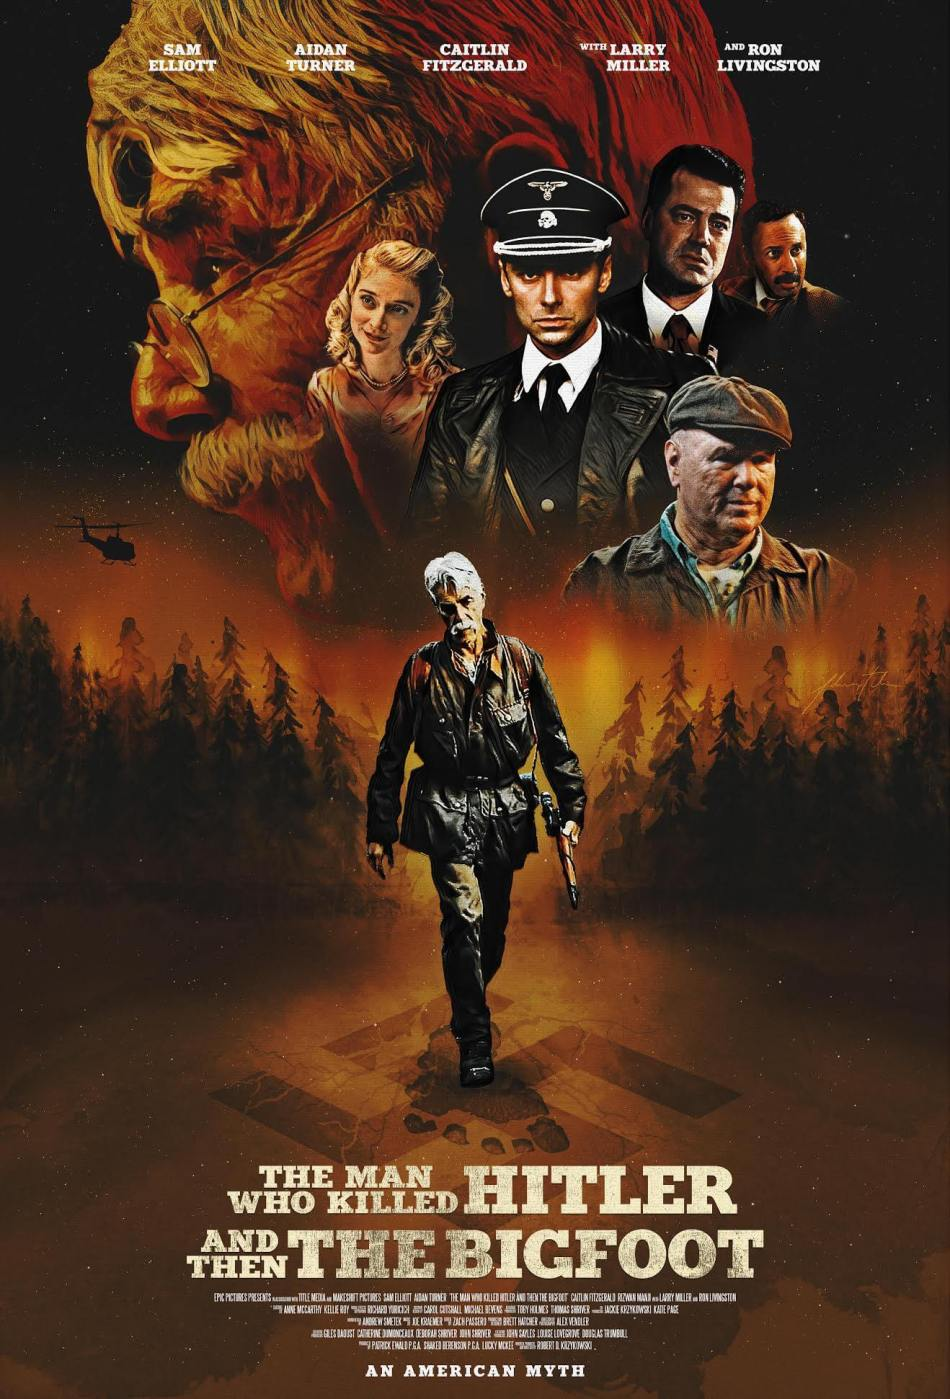 the-man-who-killed-hitler-and-then-bigfoot-sam-elliott-poster.jpg